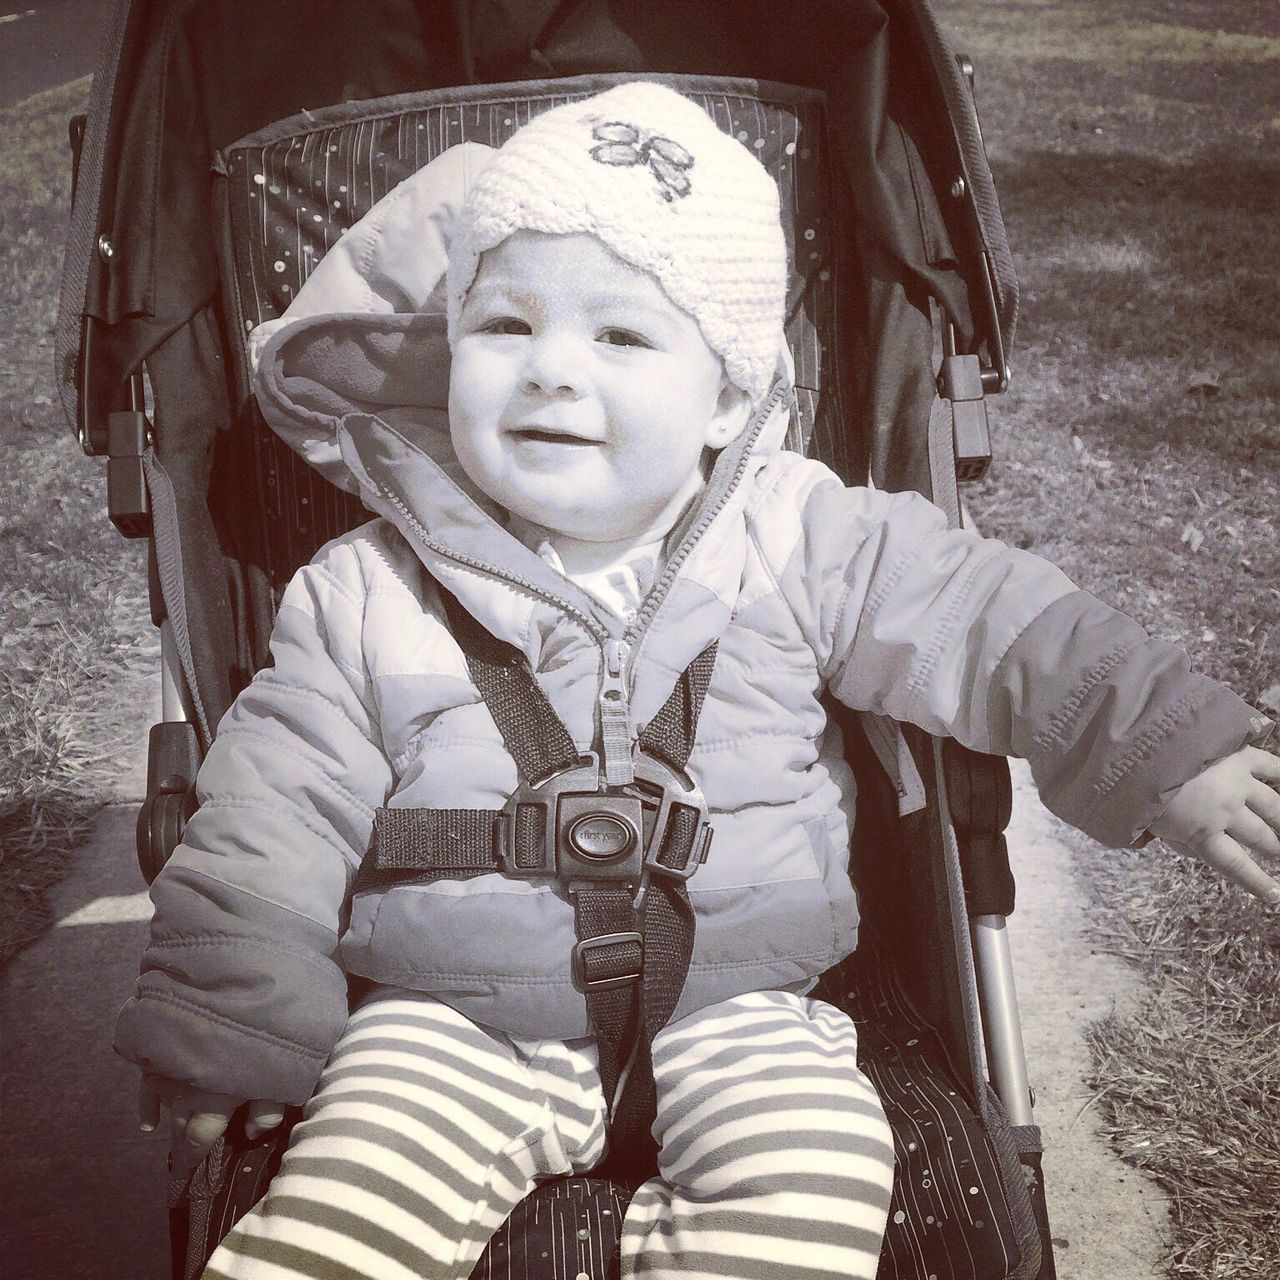 Baby girl in stroller Looking At Camera Portrait Childhood Lifestyles Real People One Person Outdoors Day IPhoneography Upclose And Personal Toddlerlife